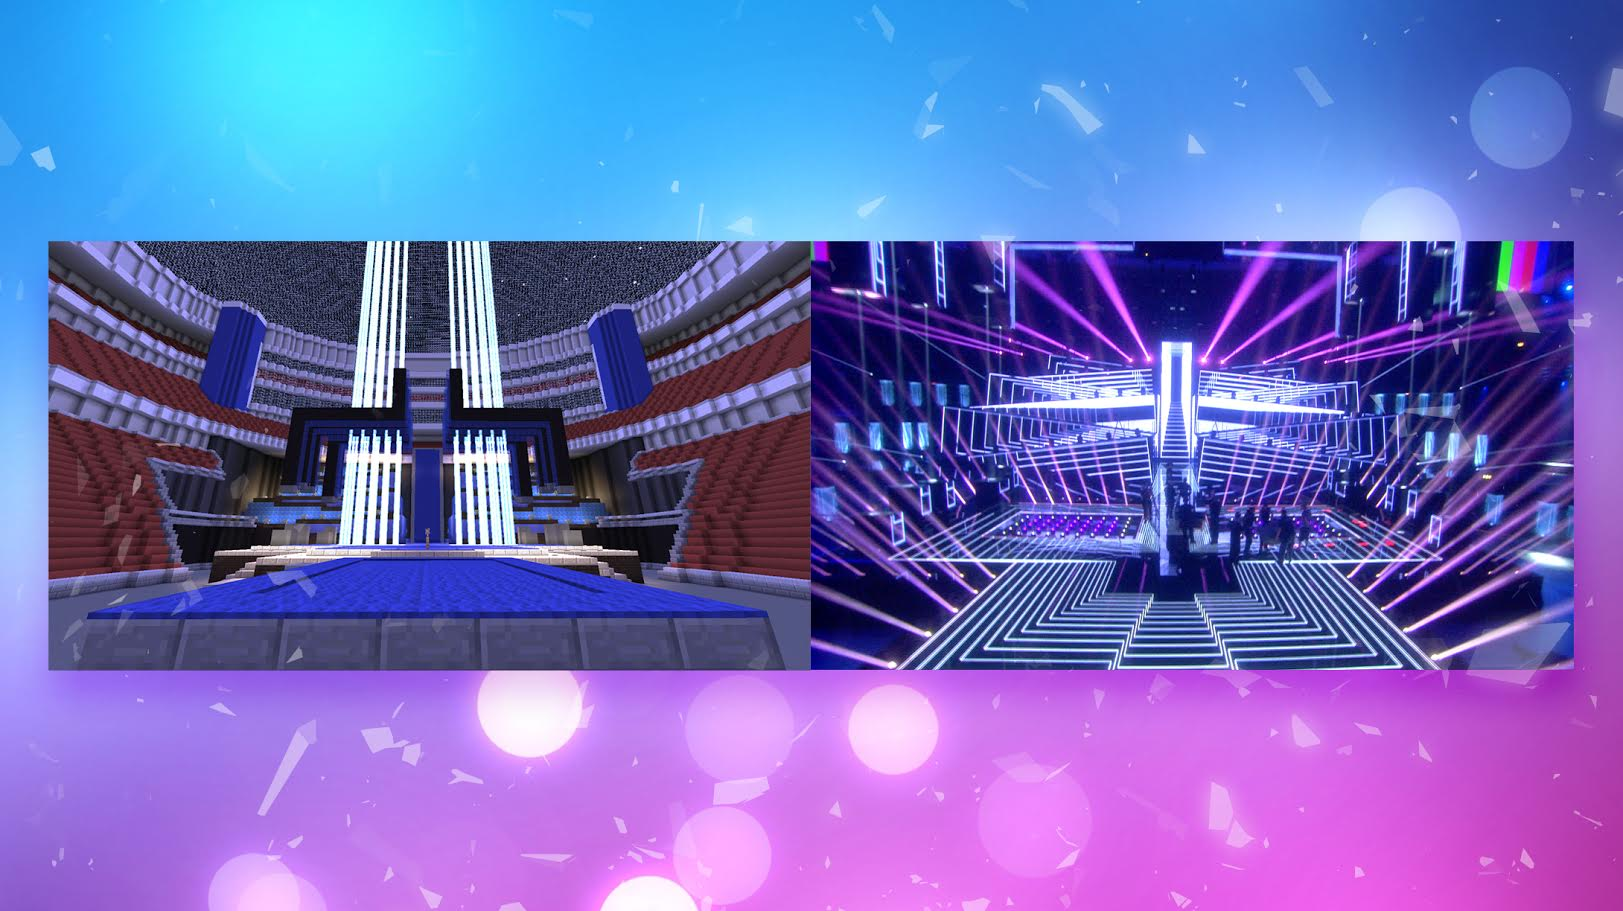 Download The Eurovision Stage Reenact The Magic - Sweden map minecraft download